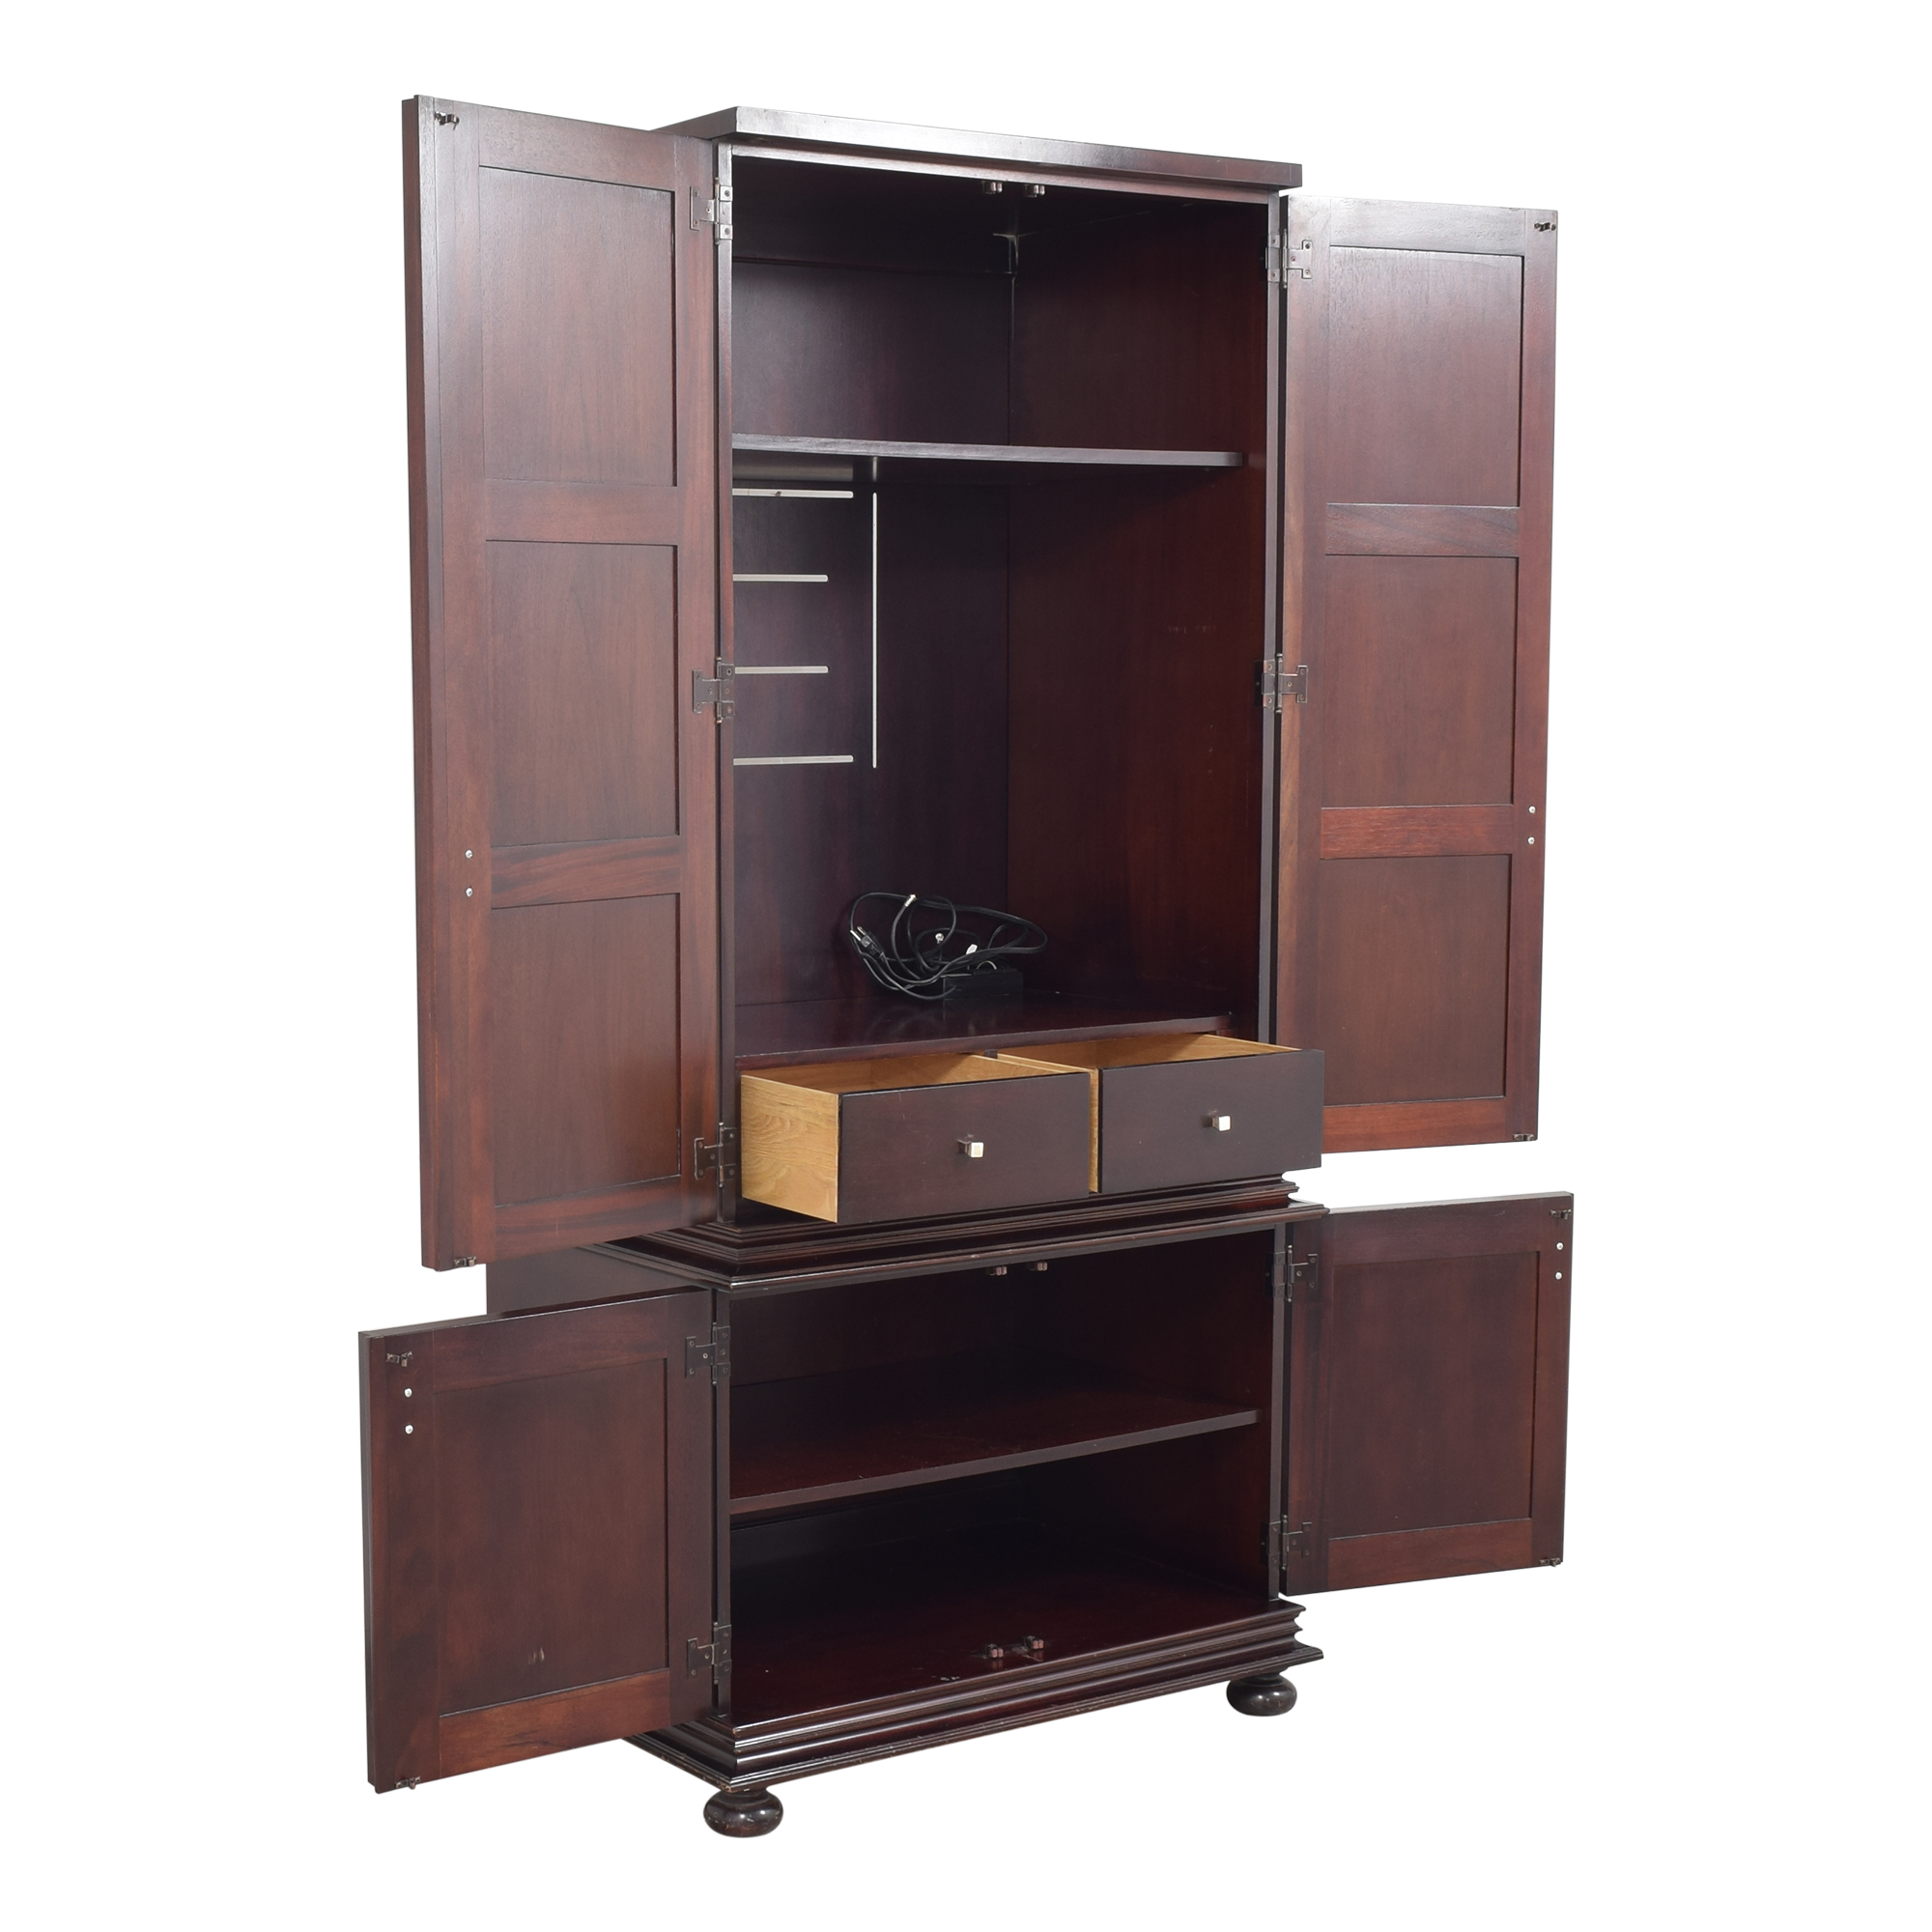 Hickory Chair Thomas O'Brien Collection for Hickory Chair Media Armoire nyc